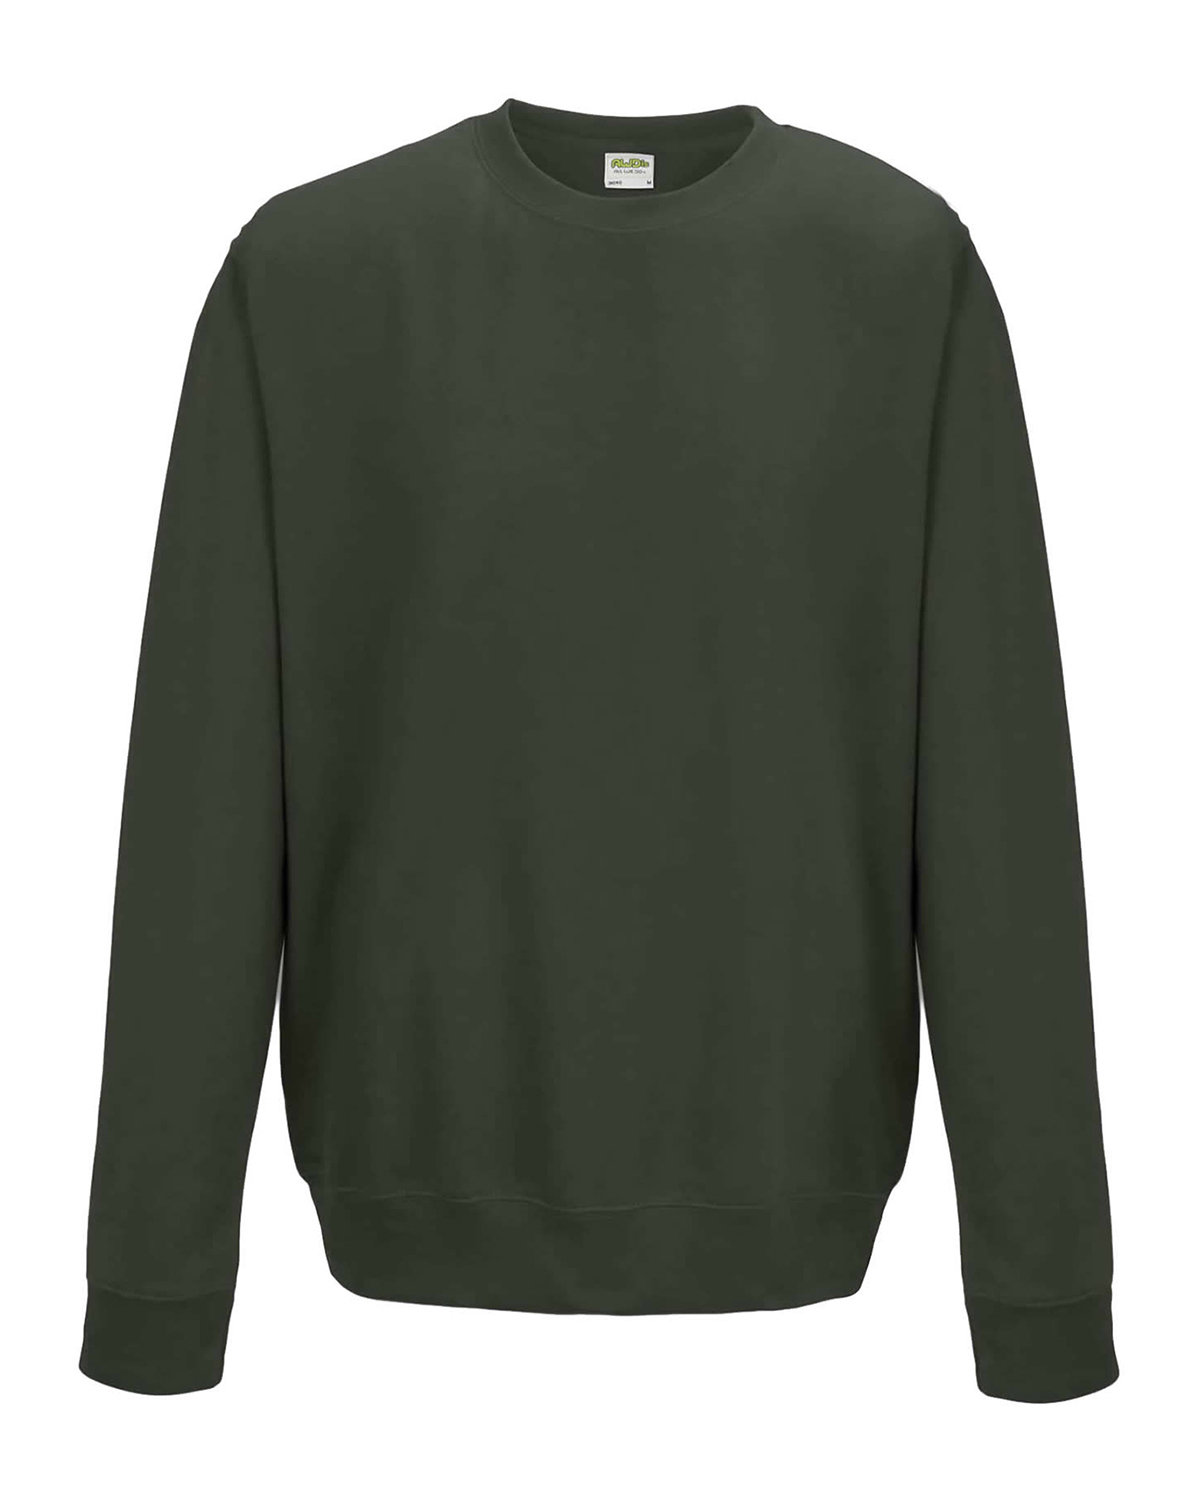 Just Hoods By AWDis Adult 80/20 Midweight College Crewneck Sweatshirt OLIVE GREEN